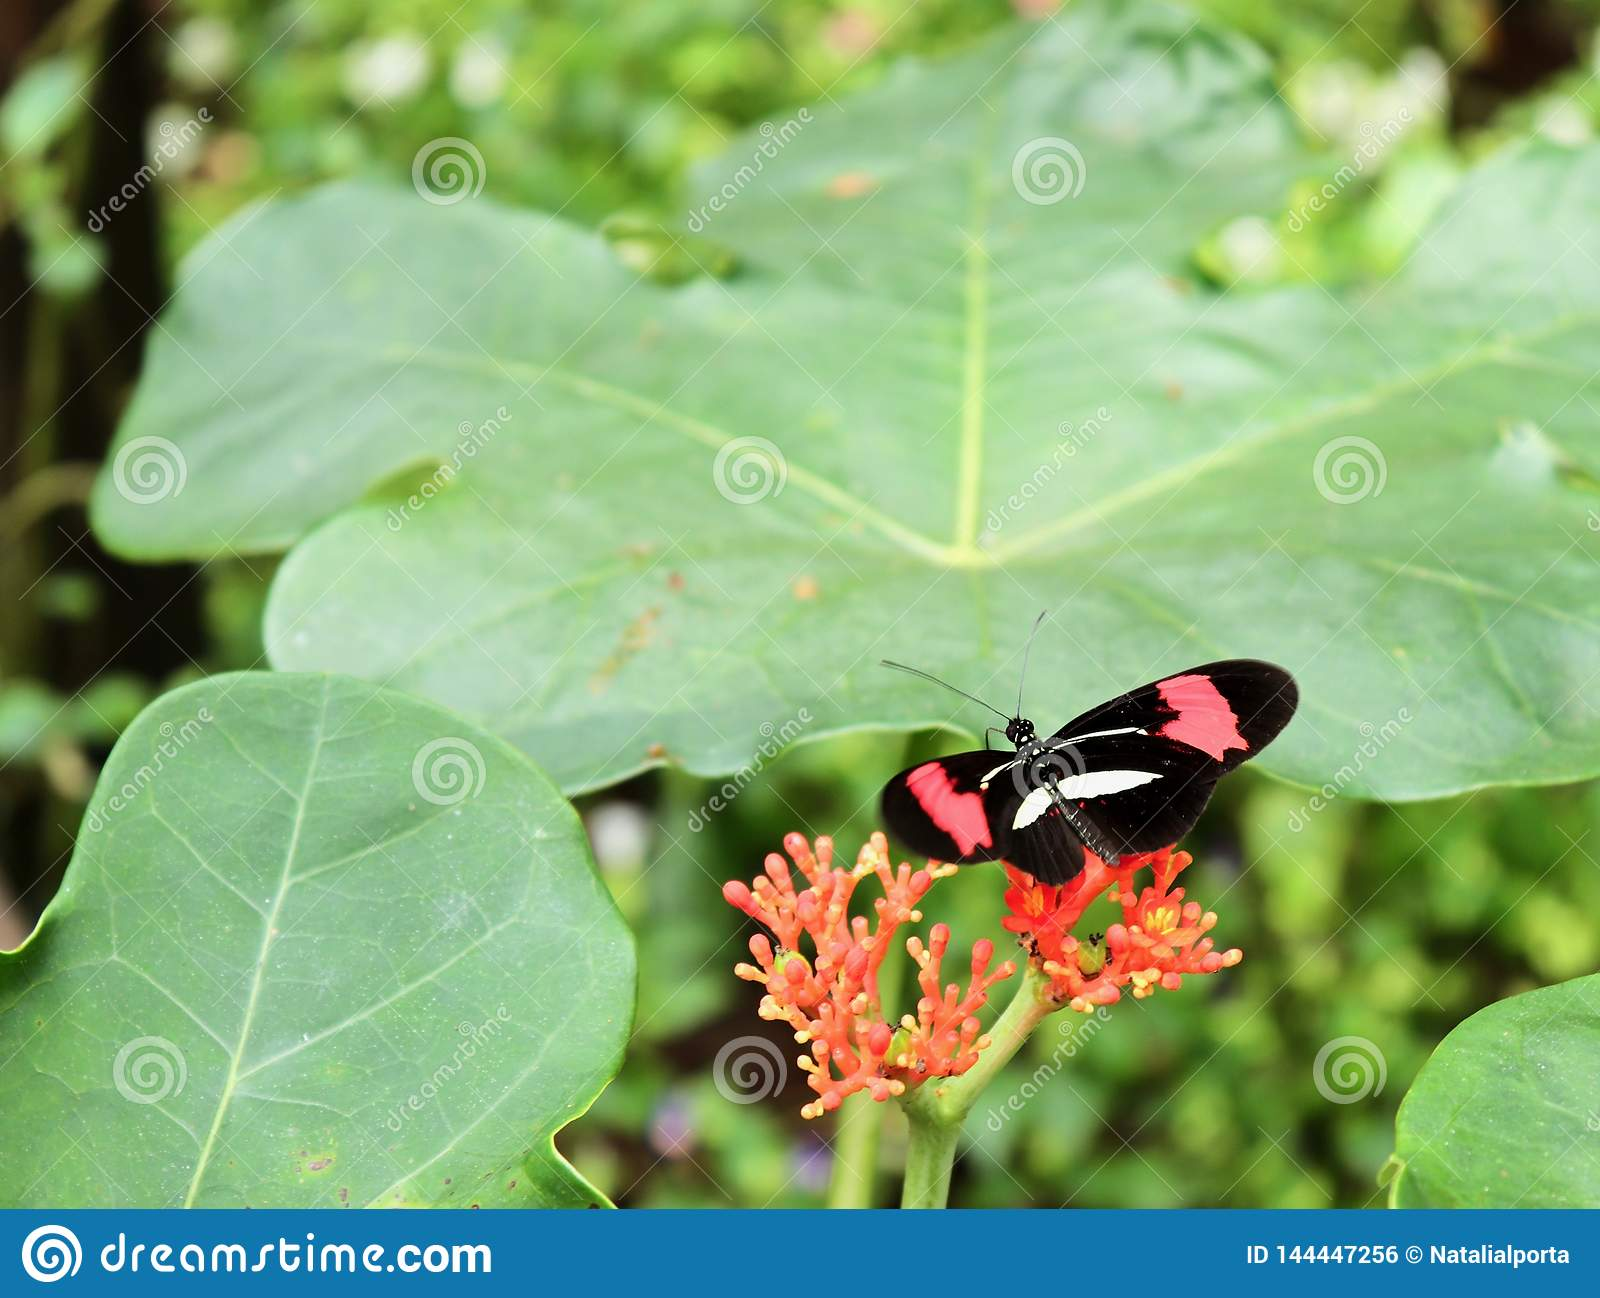 A butterfly and red flowers